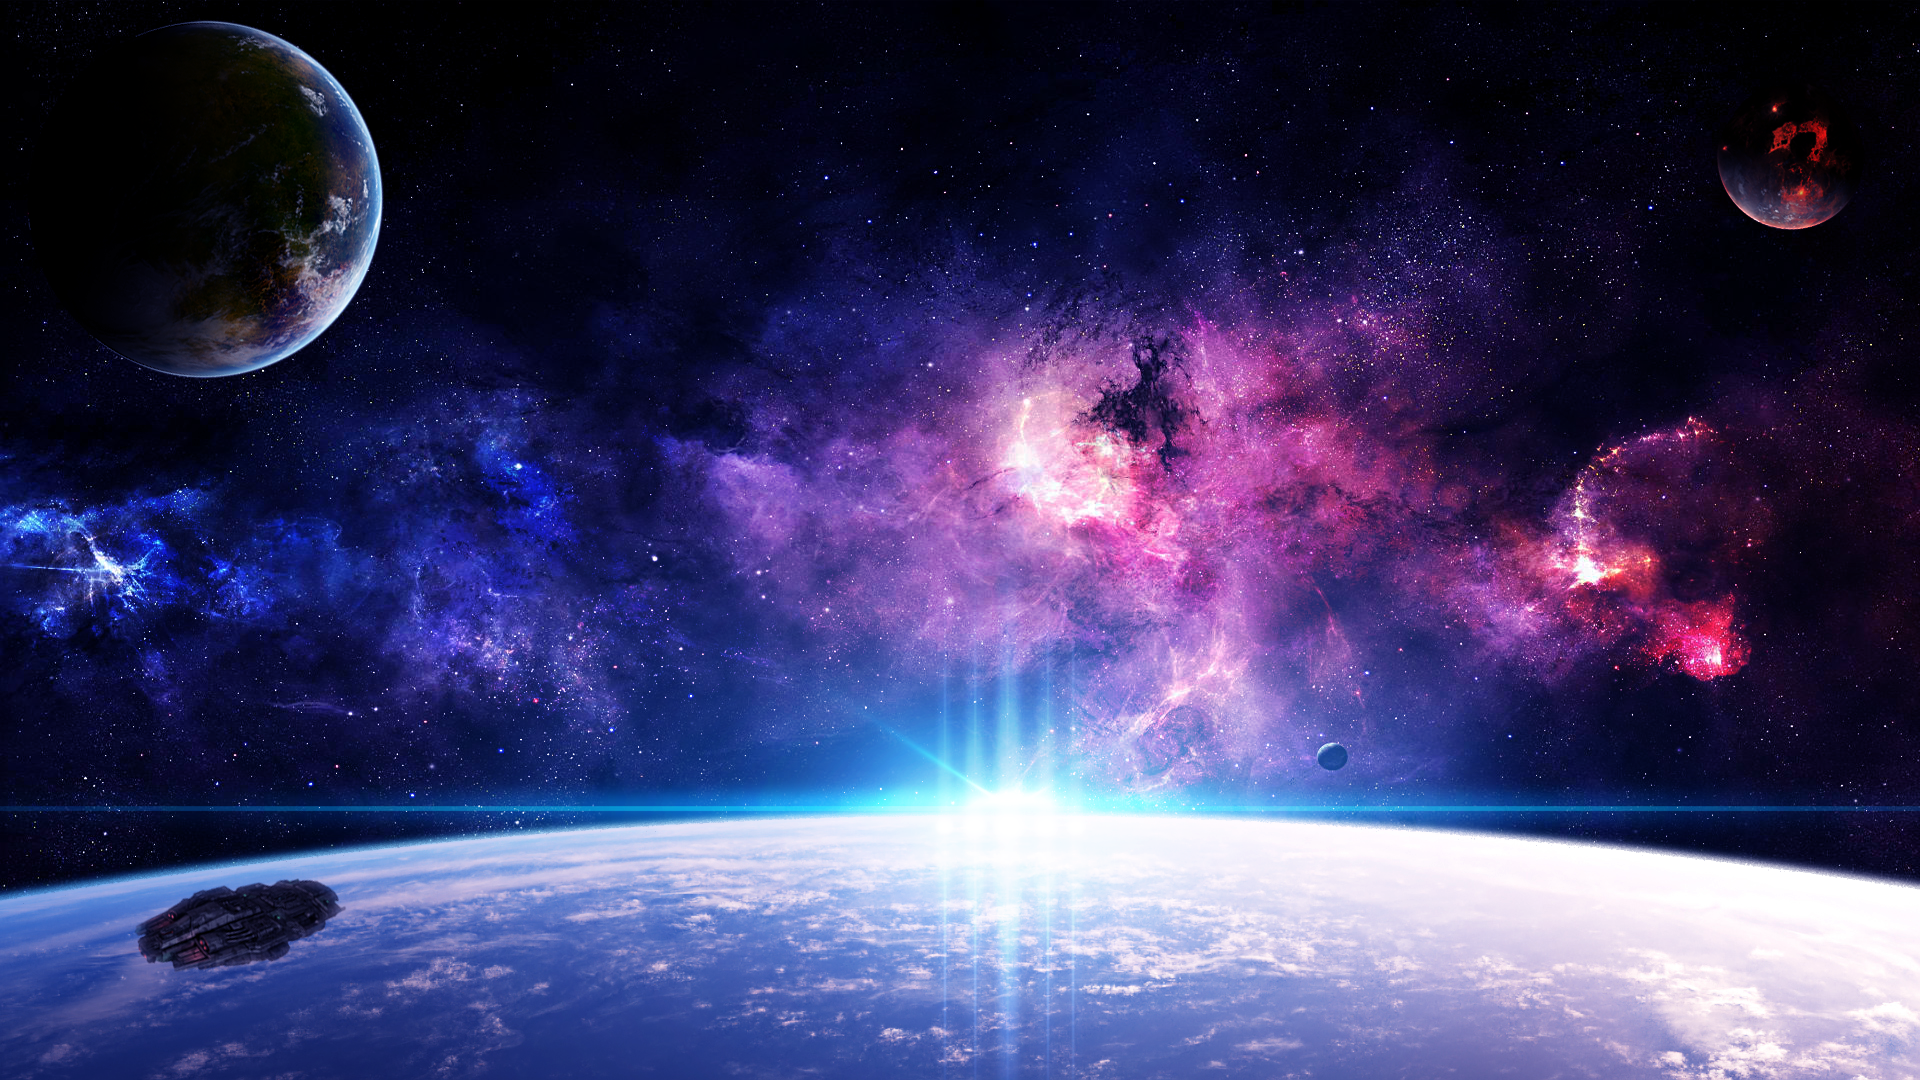 Space HD PNG - 120268